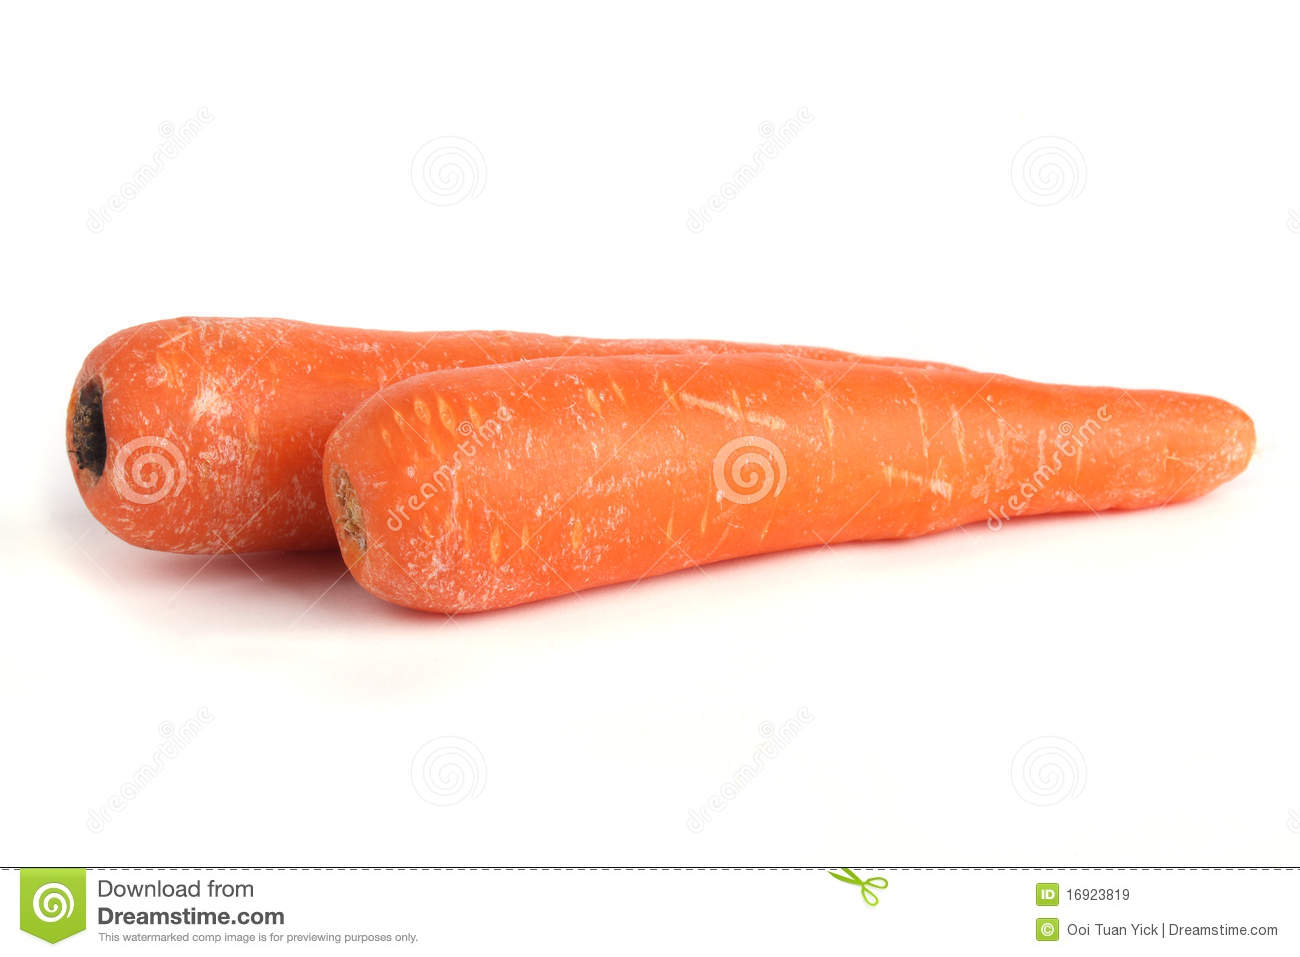 Two Carrot stock image, 1 4 8 , For example if you forget 8×2, Beetroots drop 0-3 seeds and 1 beetroot, Image of single vegetable length ...